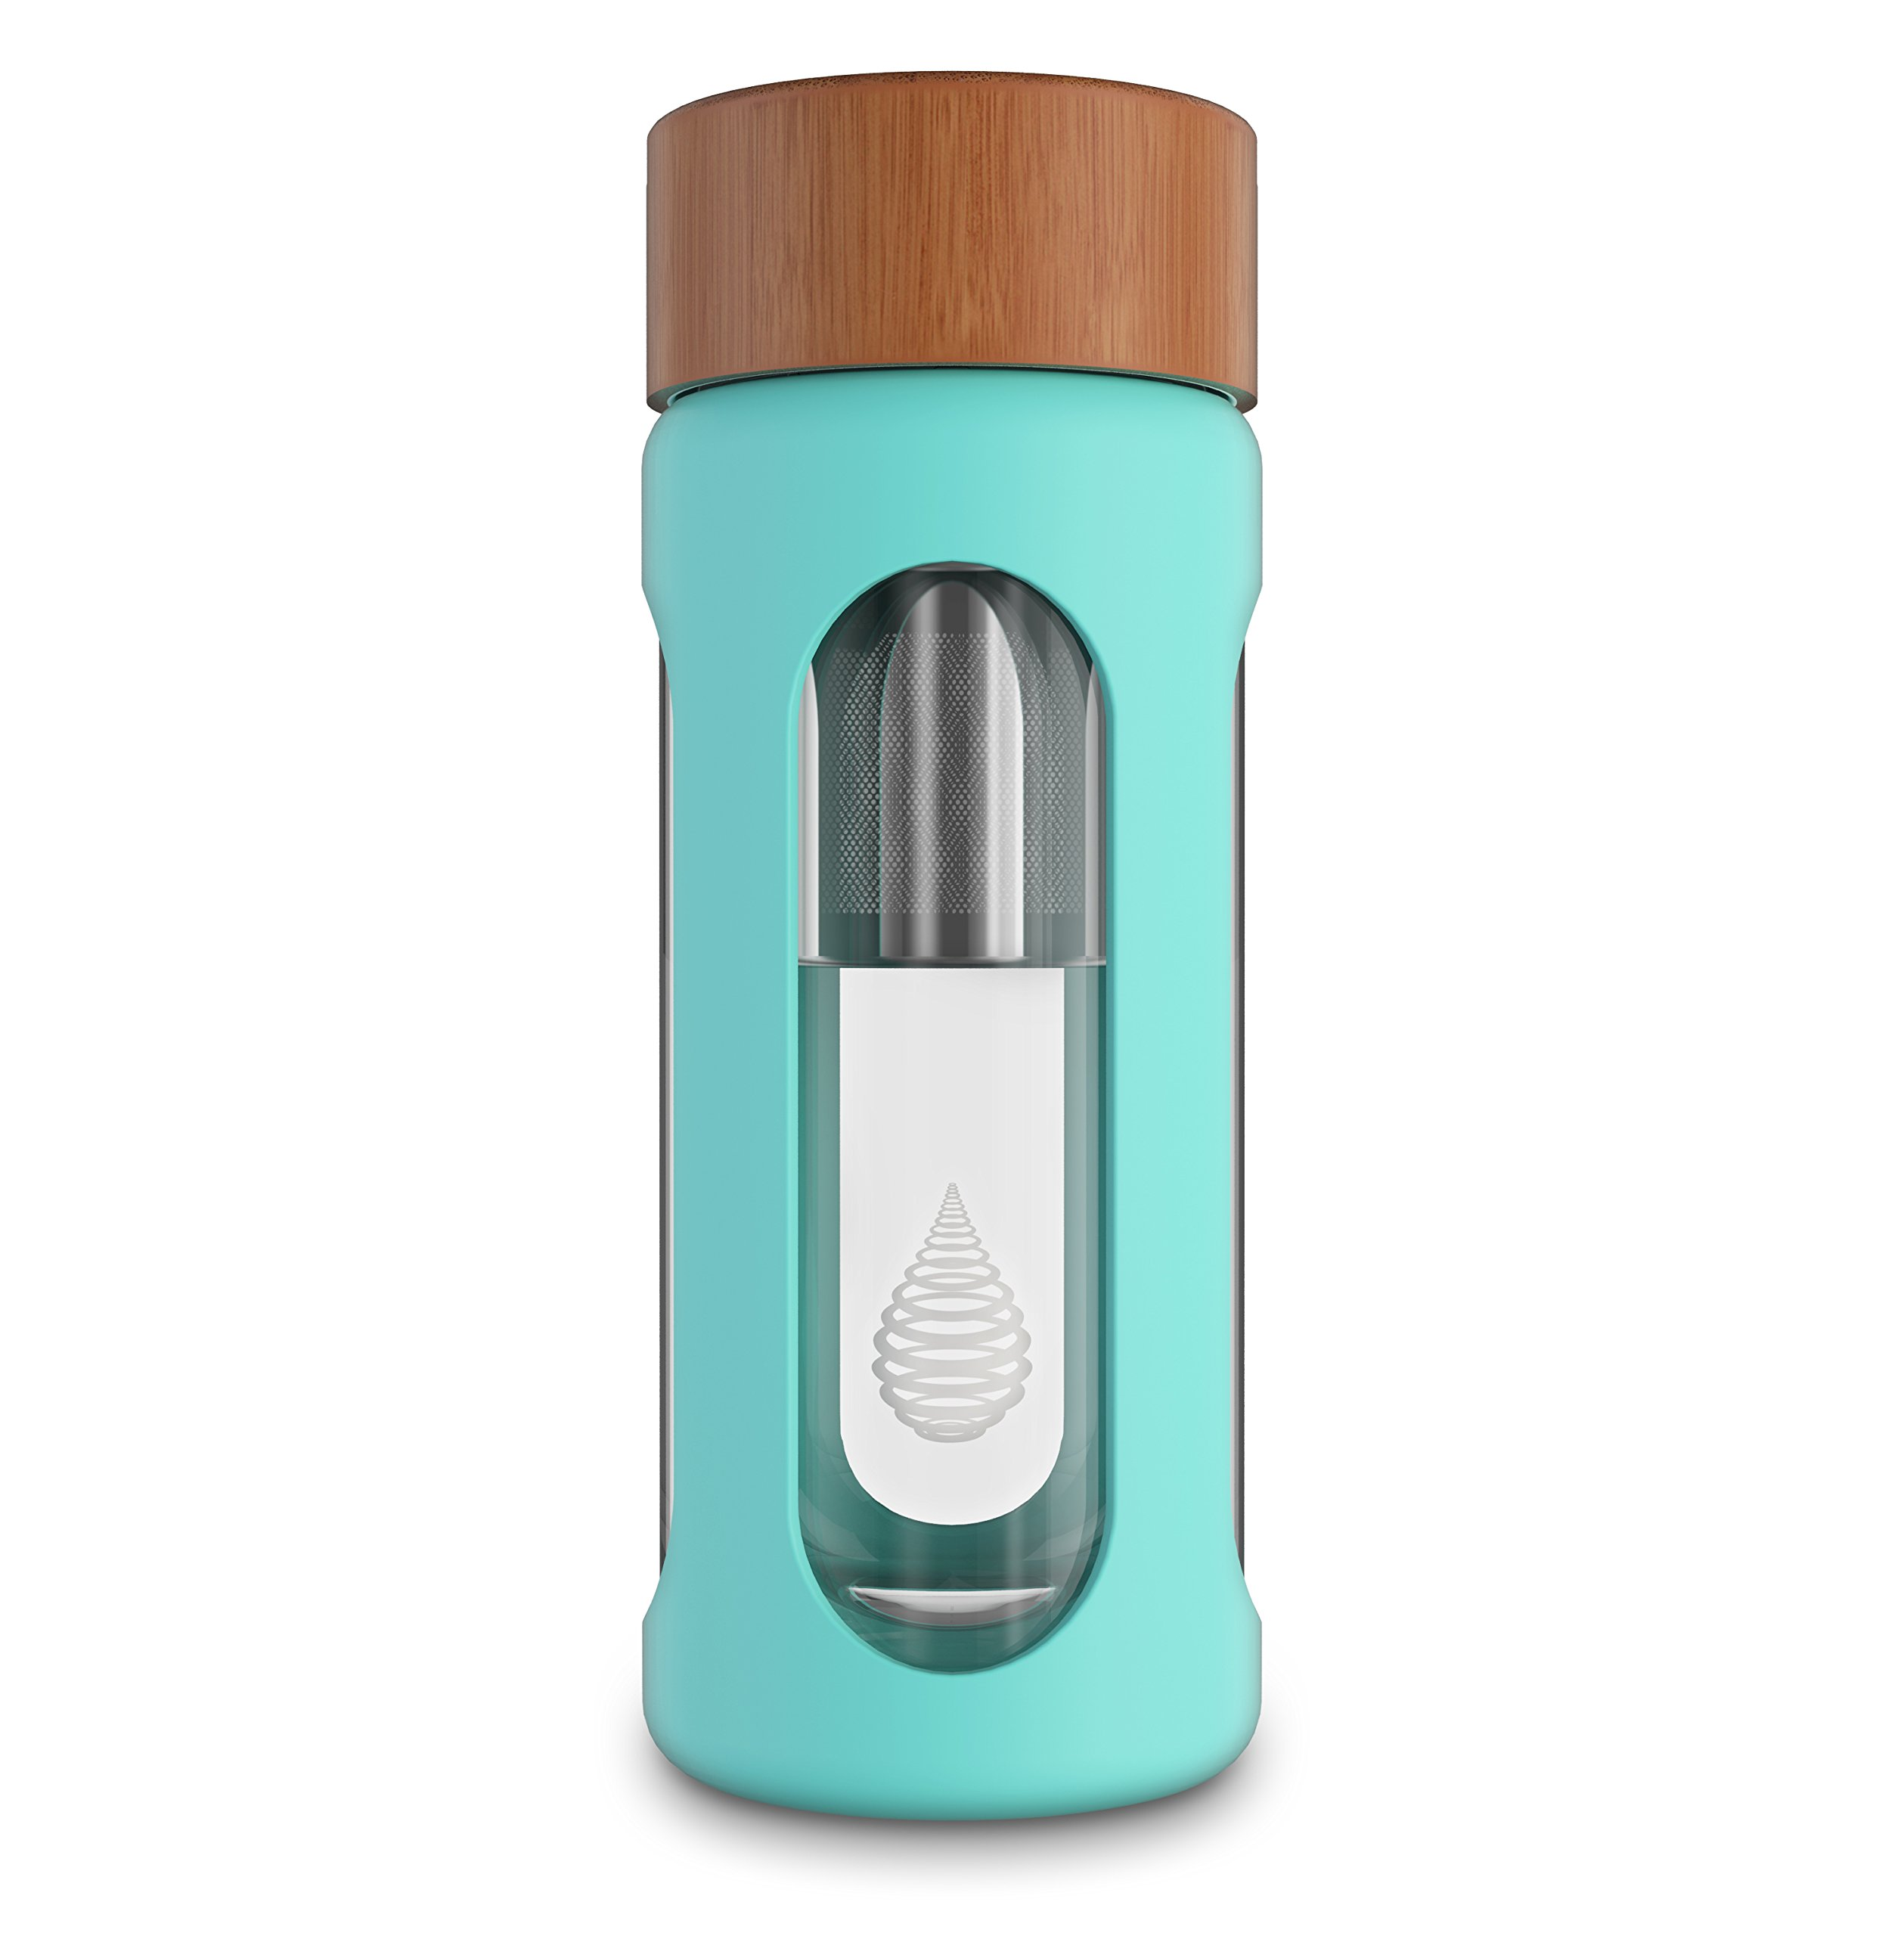 pH Hydrate Glass Alkaline Water Filter Bottle - Portable Alkaline Water Filter Ionizer - Filtered Water Bottle - Increase pH, Reduce Fluoride, Remove Heavy Metals & Chlorine, New 2018 (10oz/300ml)